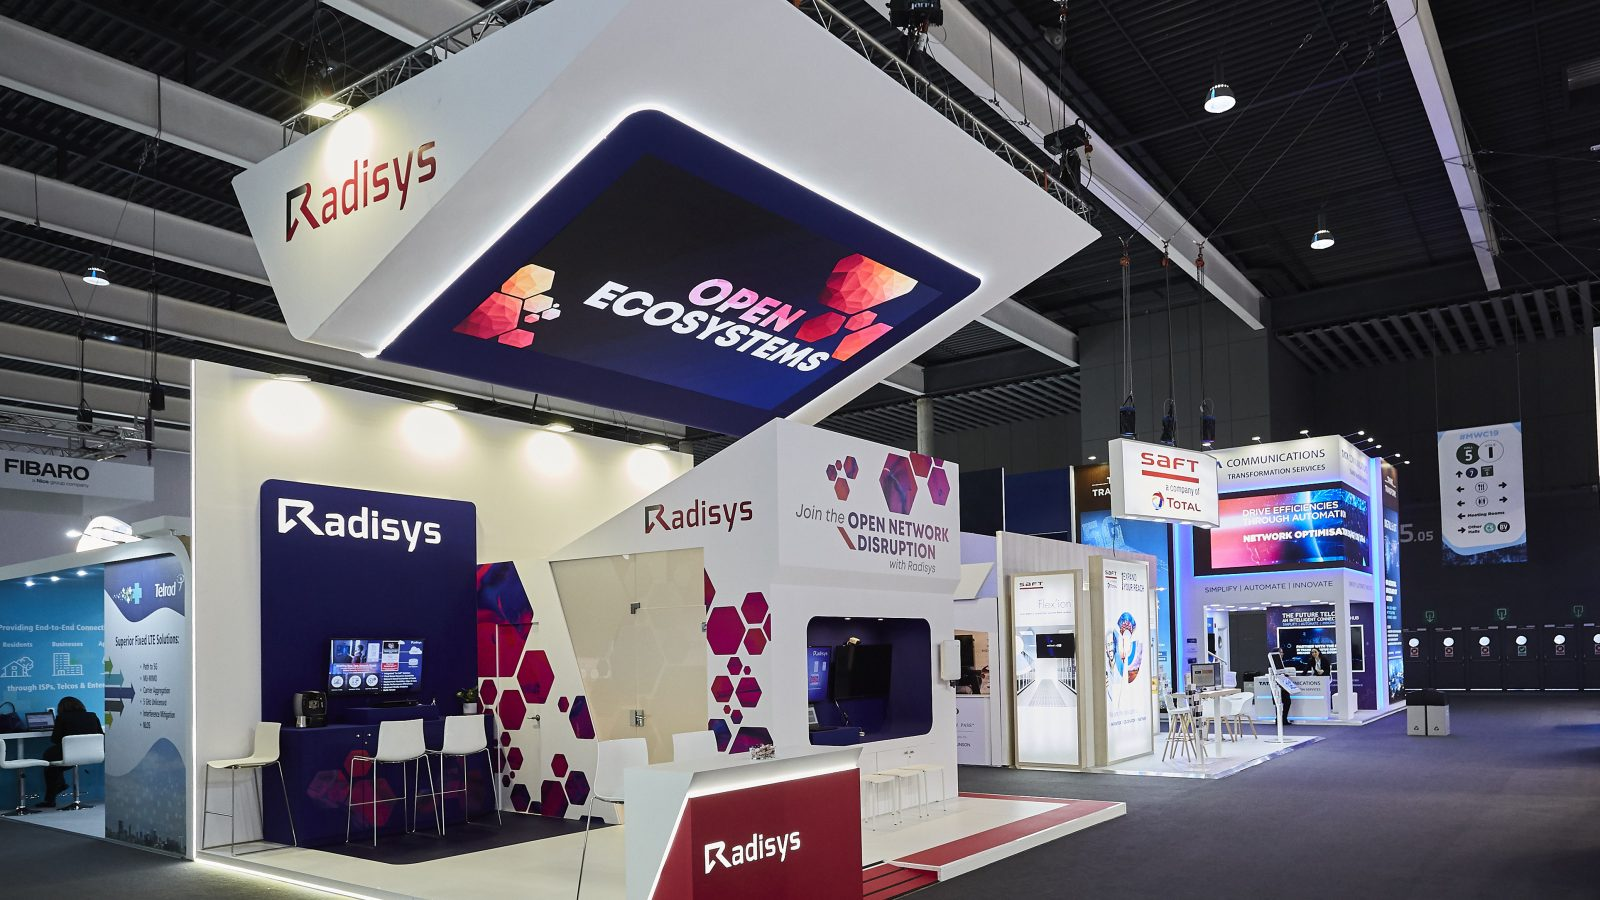 Modern design of Radisys stand at MWC 2019